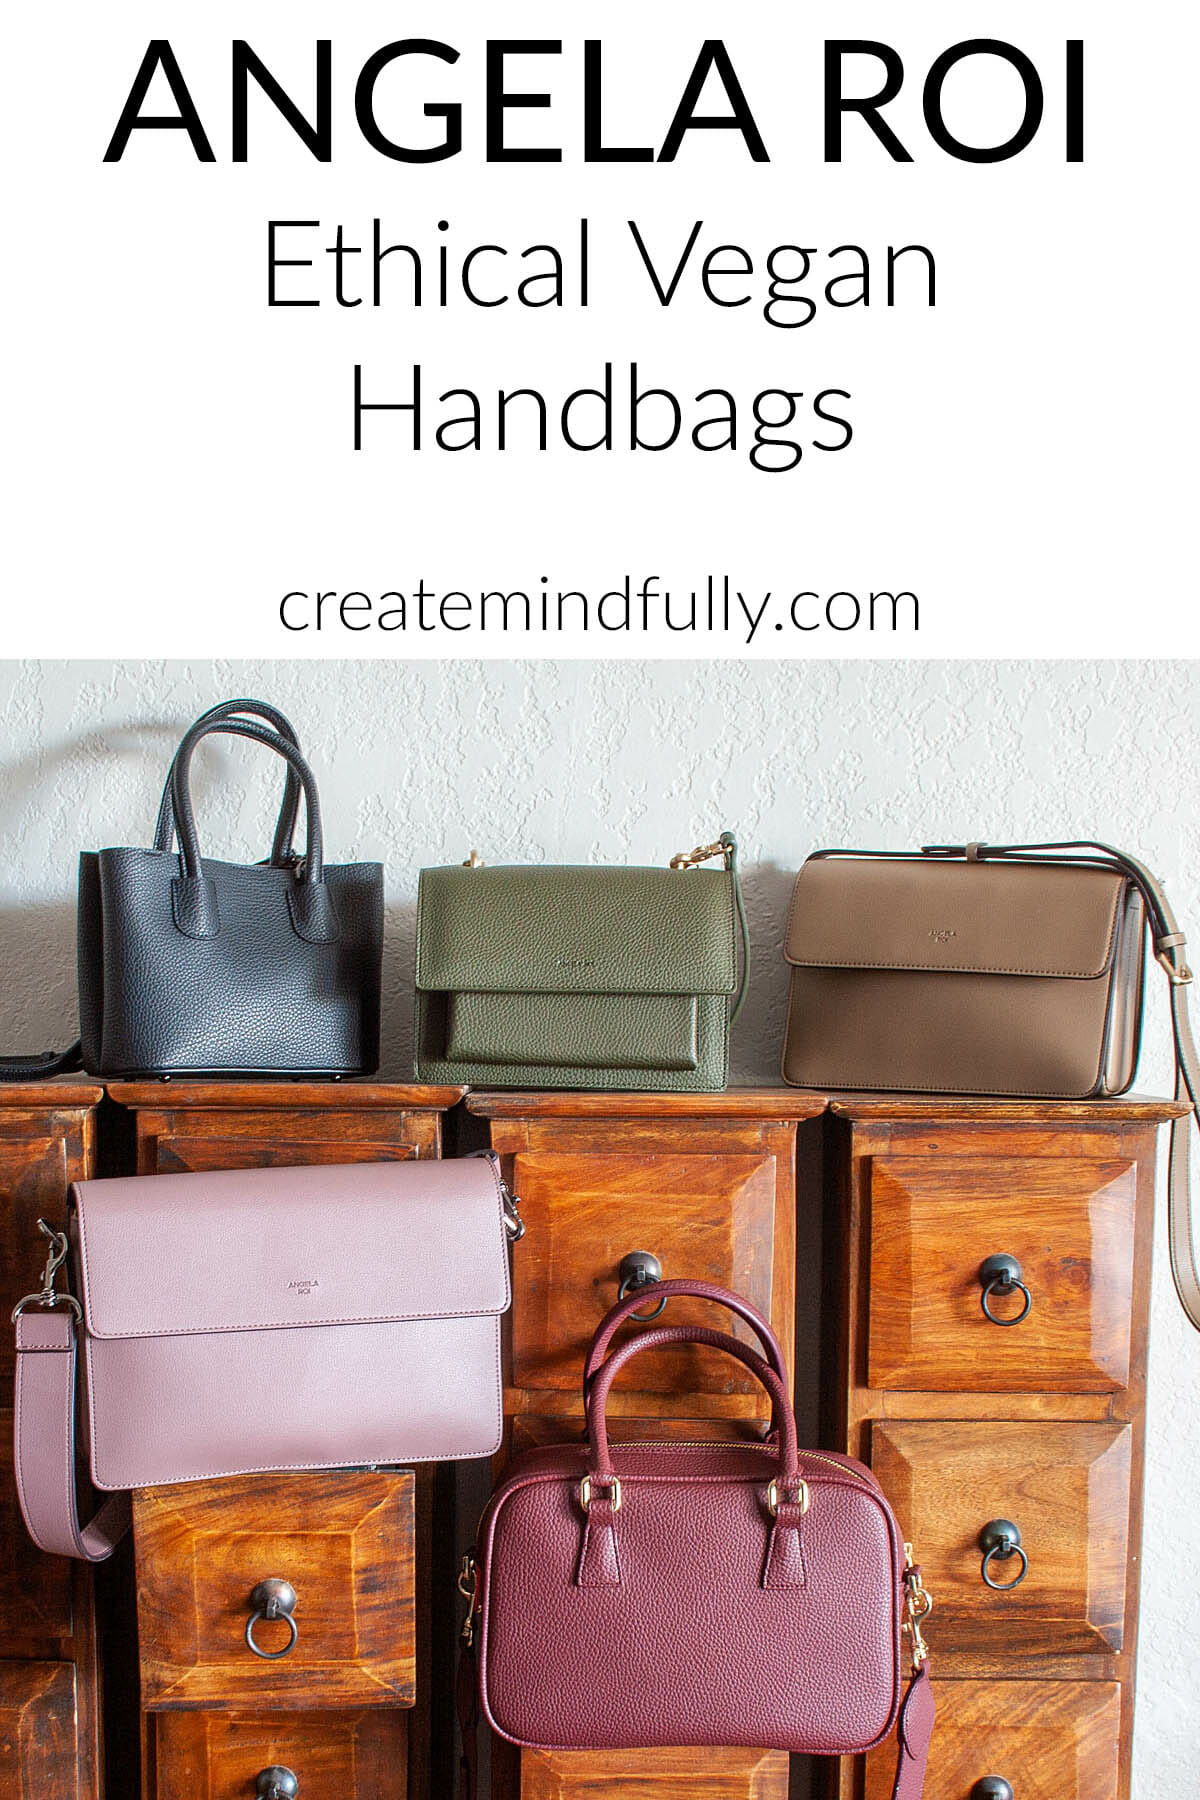 """Angela Roi ethical vegan handbags"" written on photo of 5 purses"